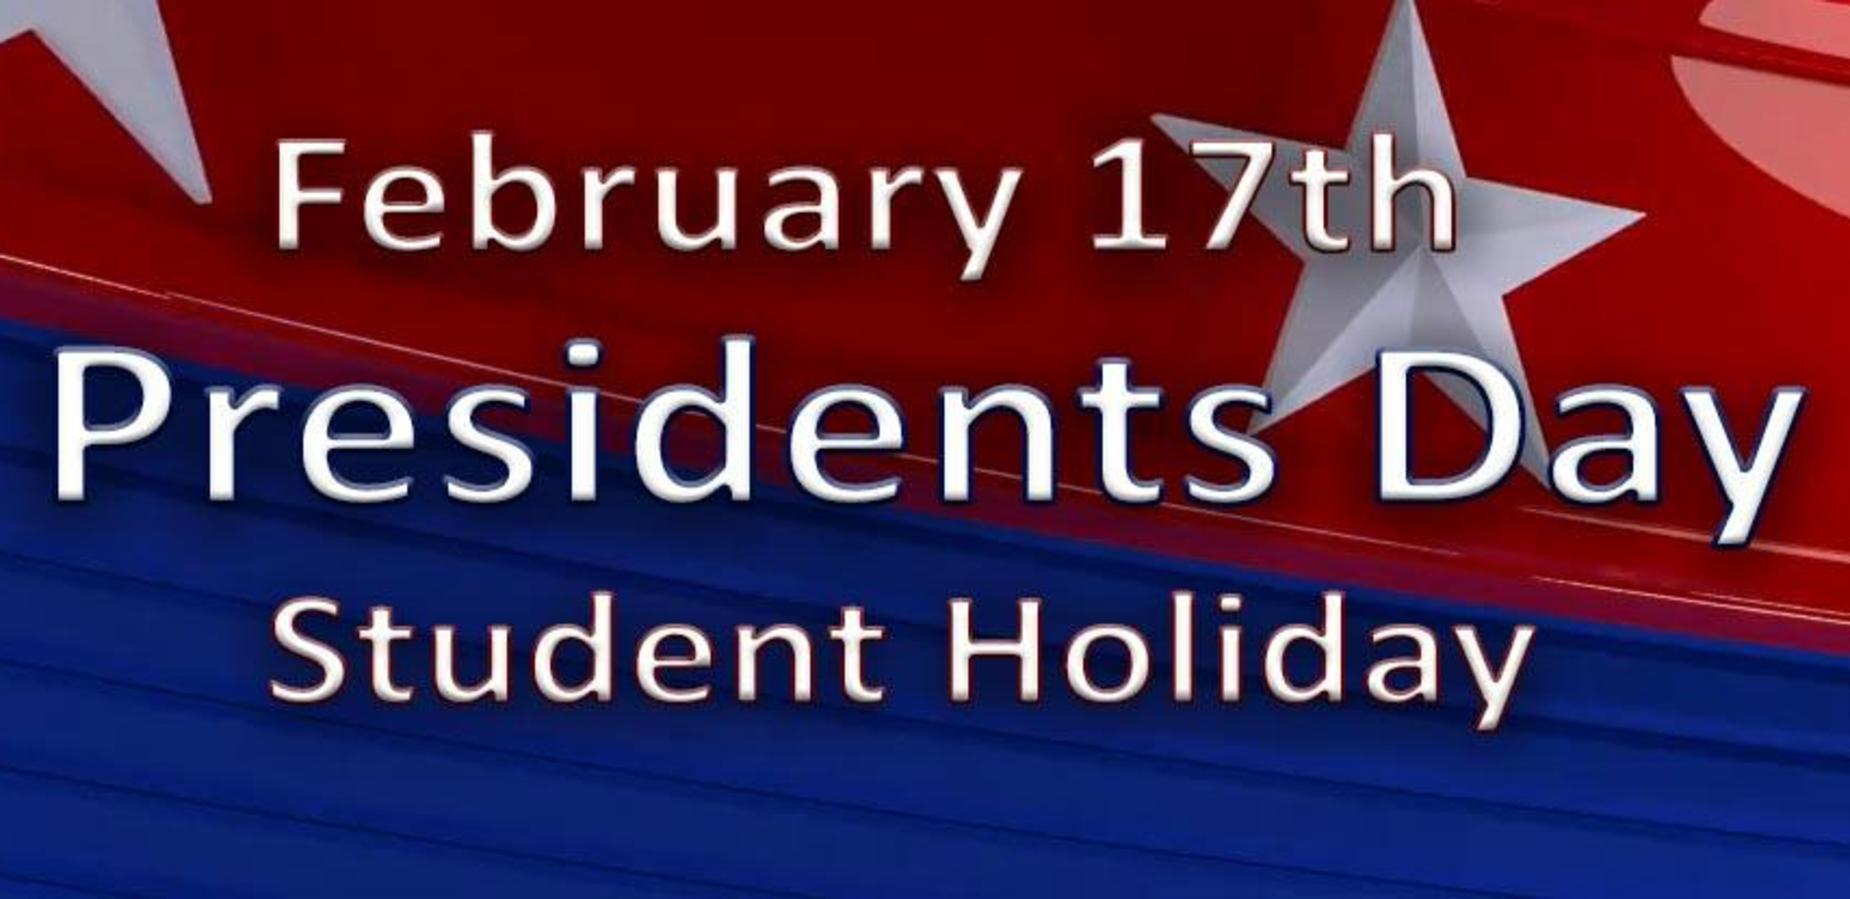 February 17th President's Day Student Holiday